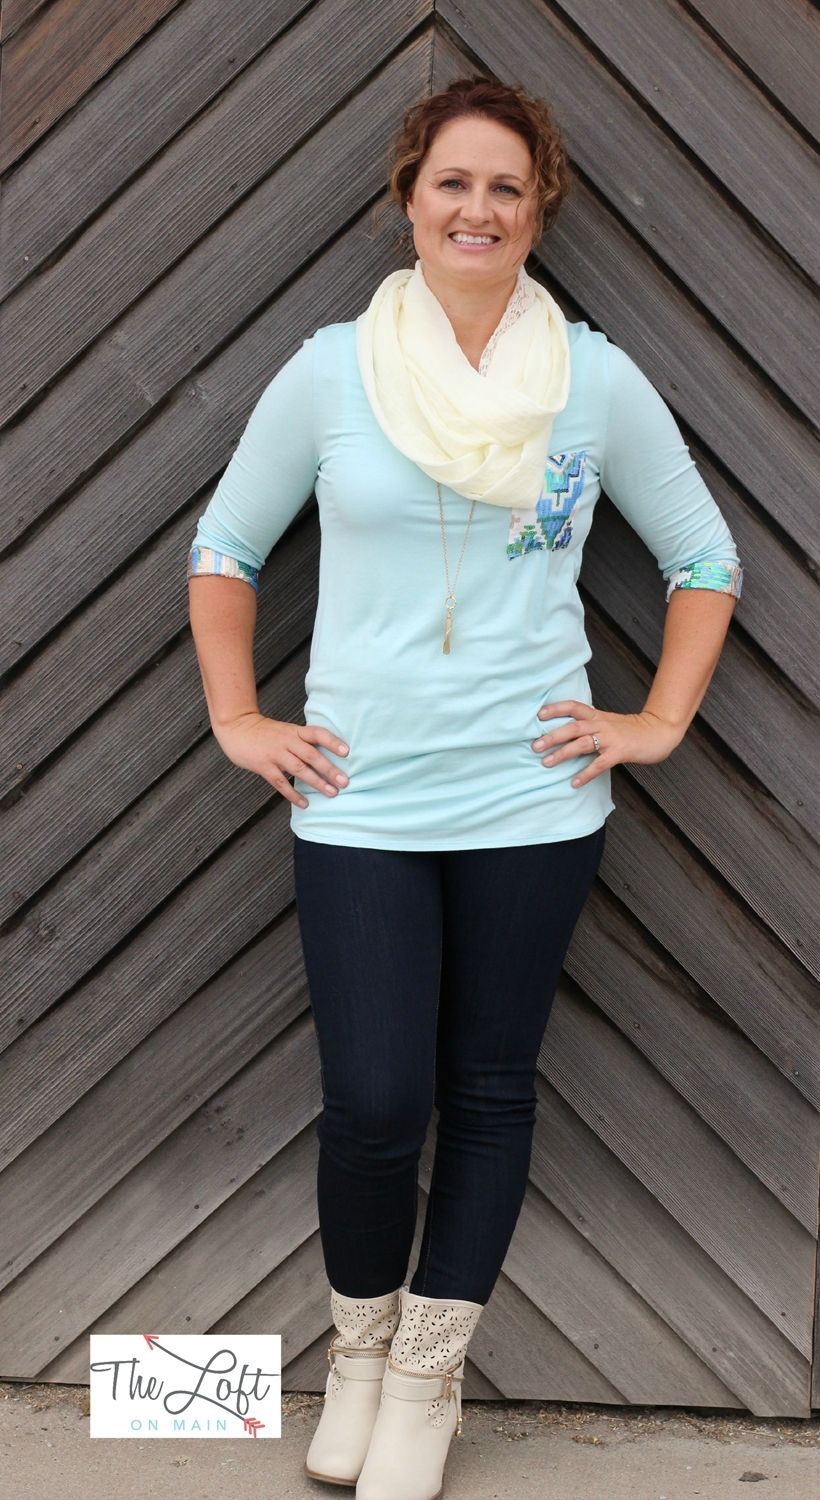 This is such a pretty 3/4 sleeve tee with bling on the pocket & sleeves...  Love it with the short cream boots...   ‪#‎ishoptheloft‬ ‪#‎fashion‬ ‪#‎nowtrending‬ ‪#‎style‬ ‪#‎ootd‬ ‪#‎mystyle‬ ‪#‎boutiquelove‬ ‪#‎trendy‬ ‪#‎shopsmall‬ ‪#‎follow‬